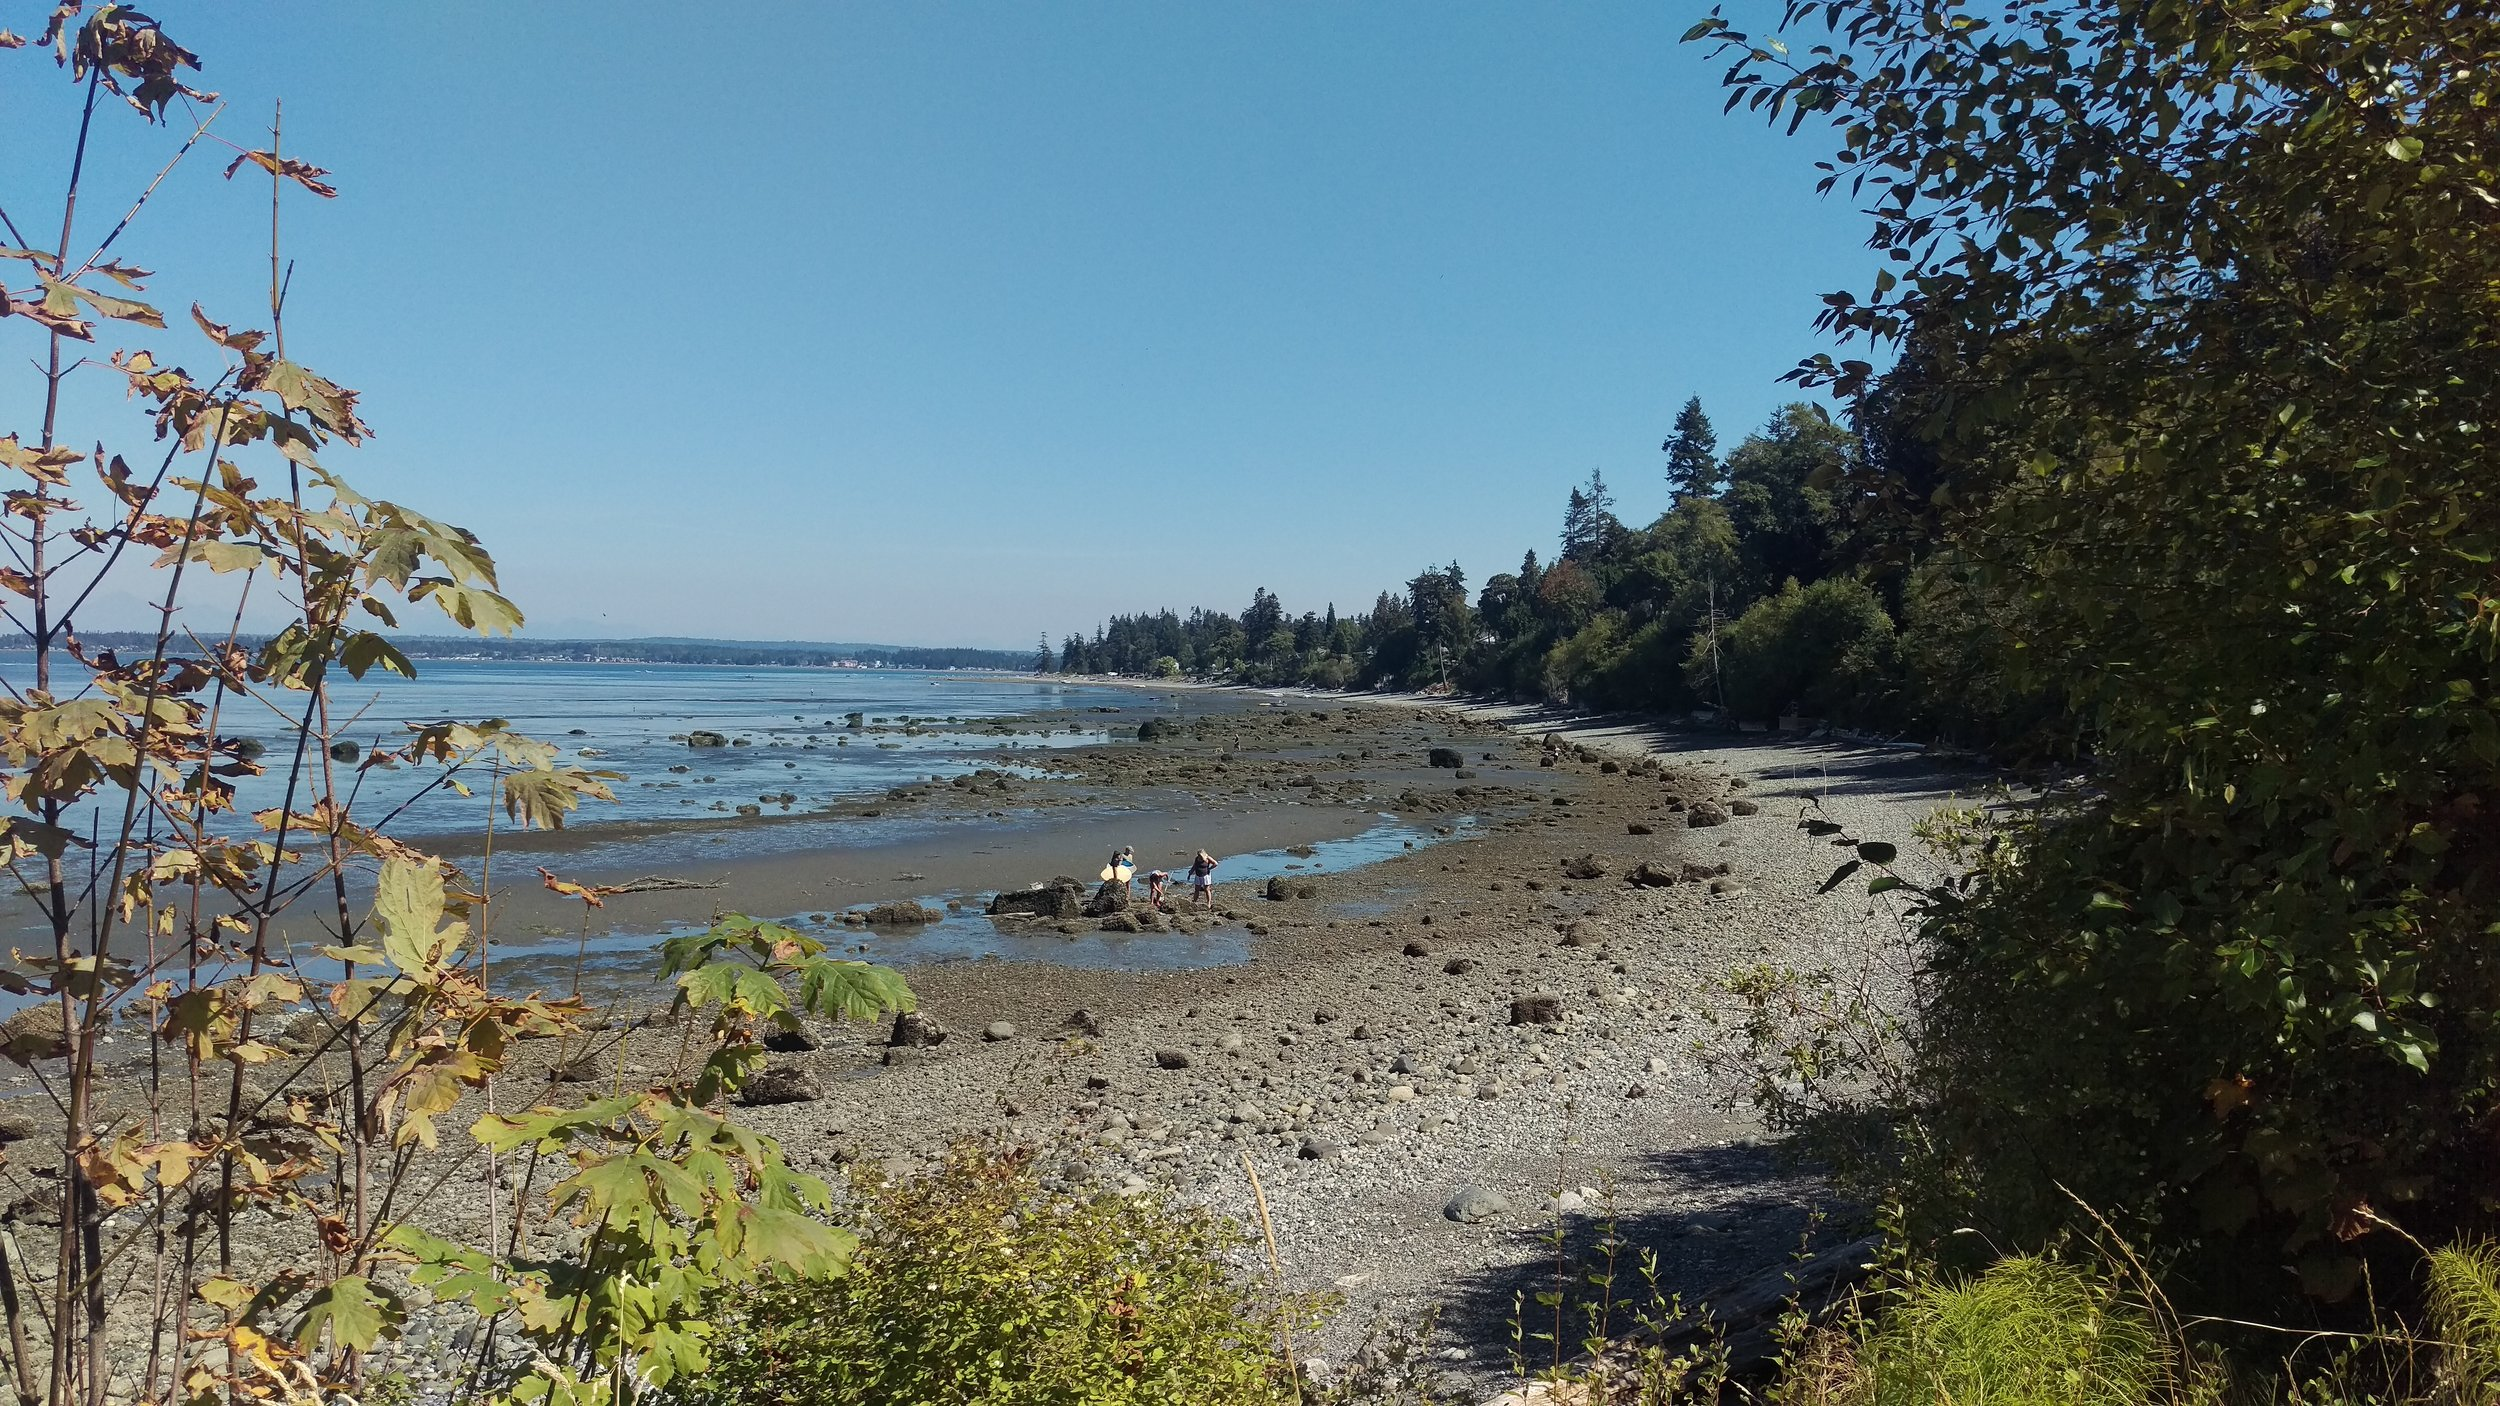 The Pacific Northwest is alright.